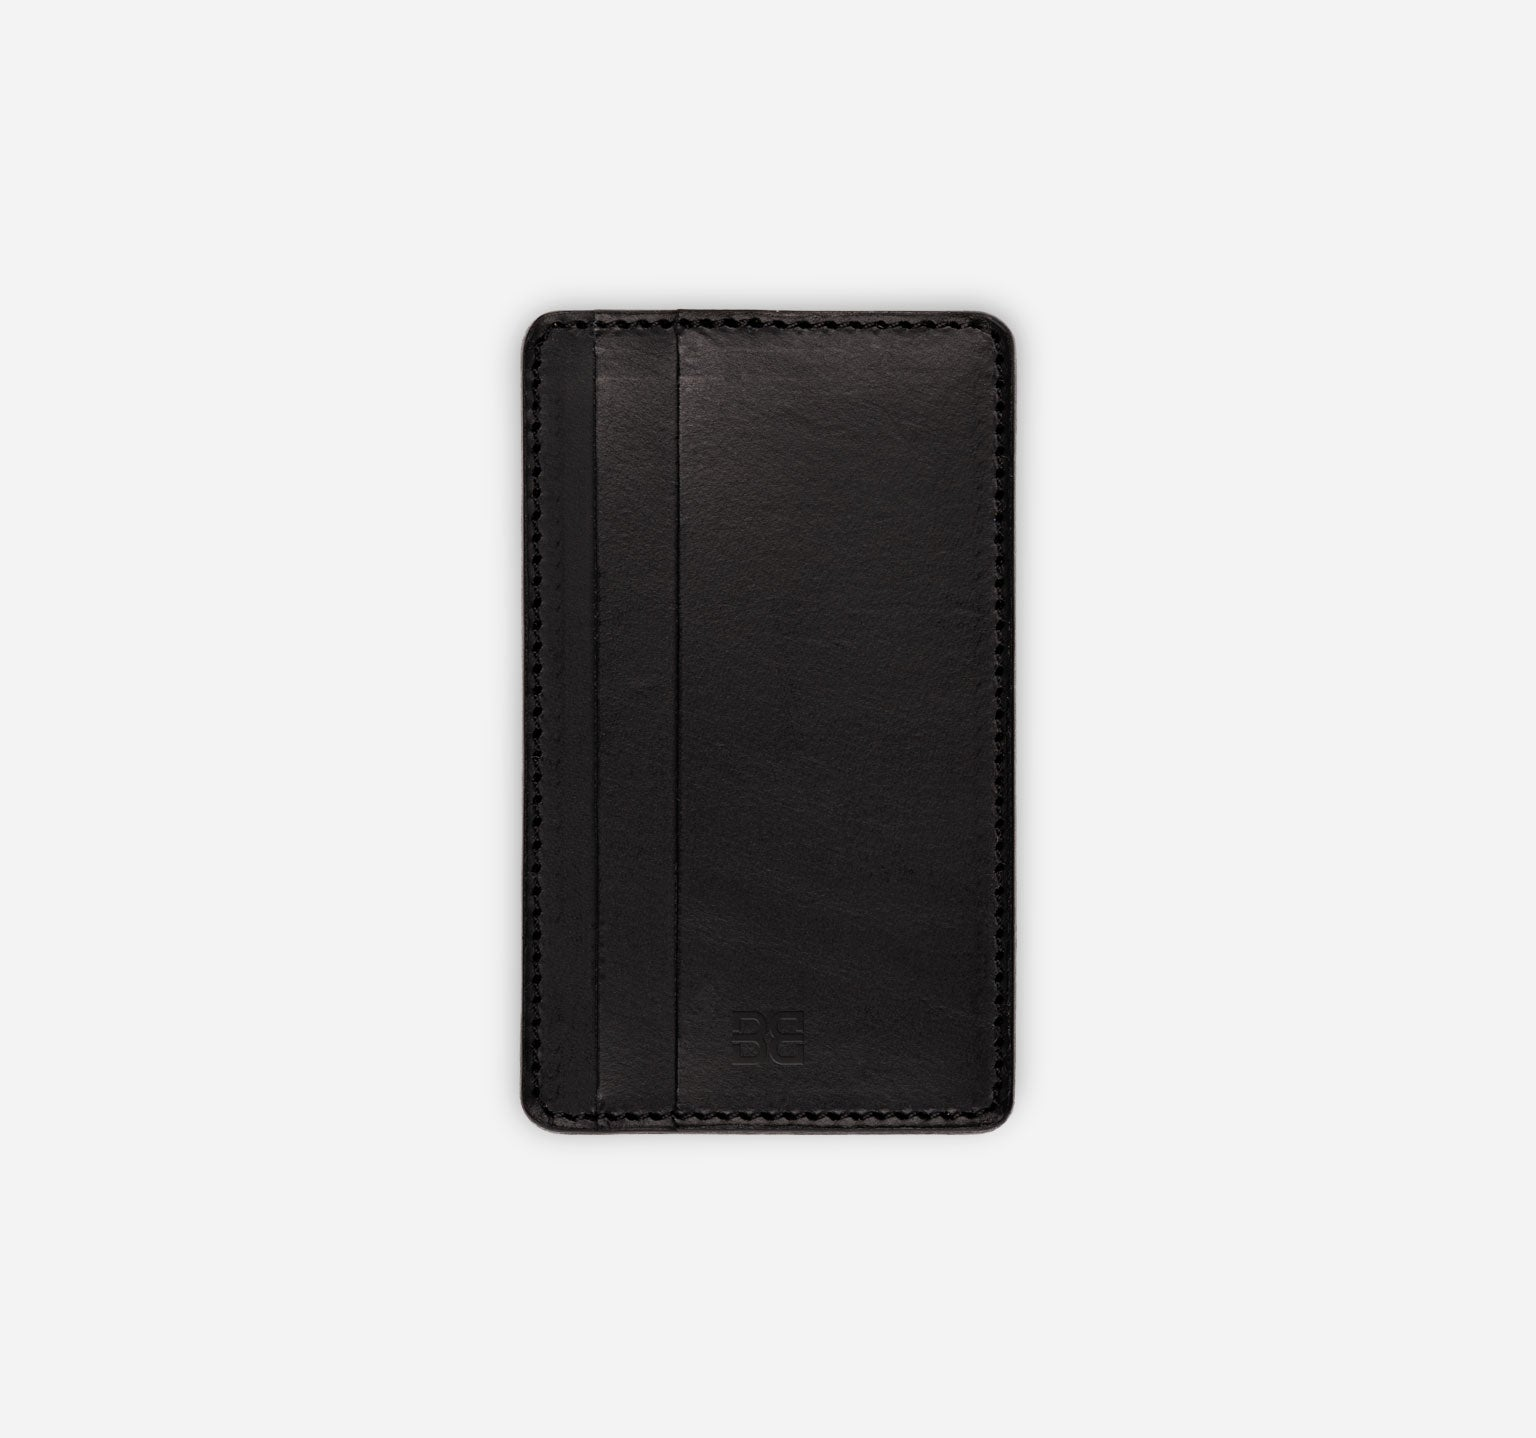 Nappa | Black | MagSafe Wallet